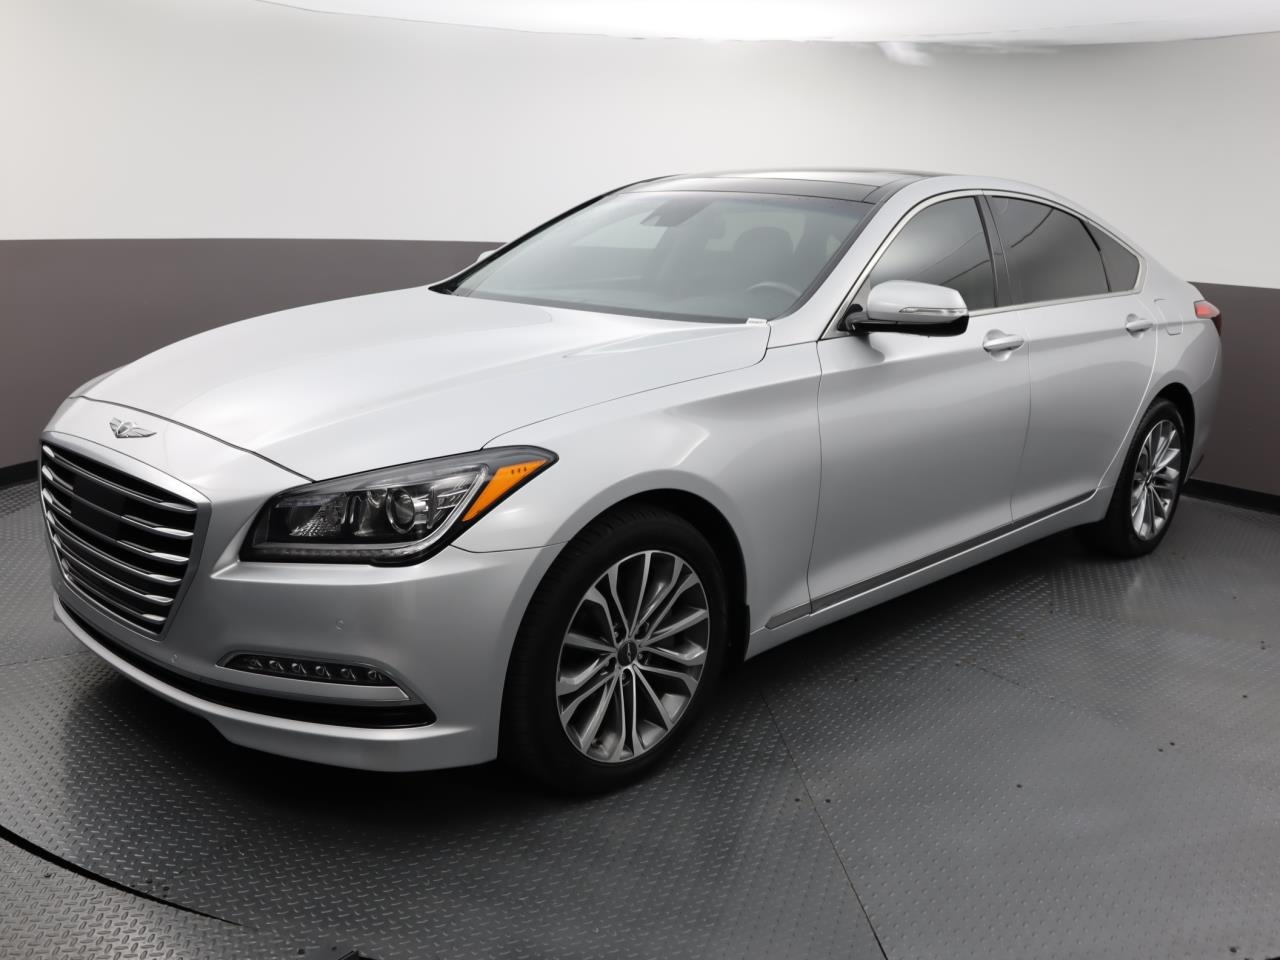 Used GENESIS G80-Premium 2017 WEST PALM 3.8L